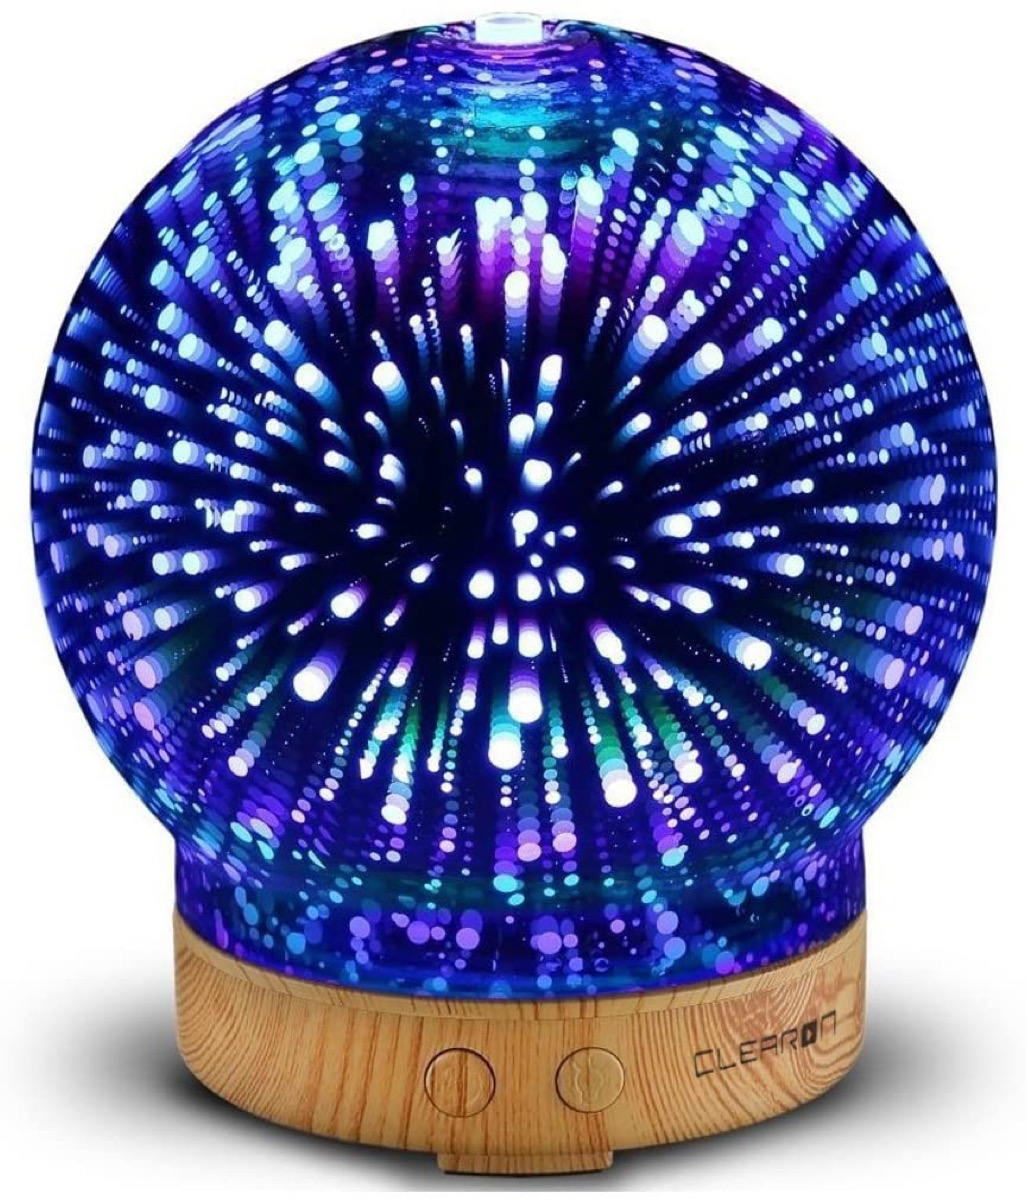 blue glass orb essential oil diffuser on wooden base